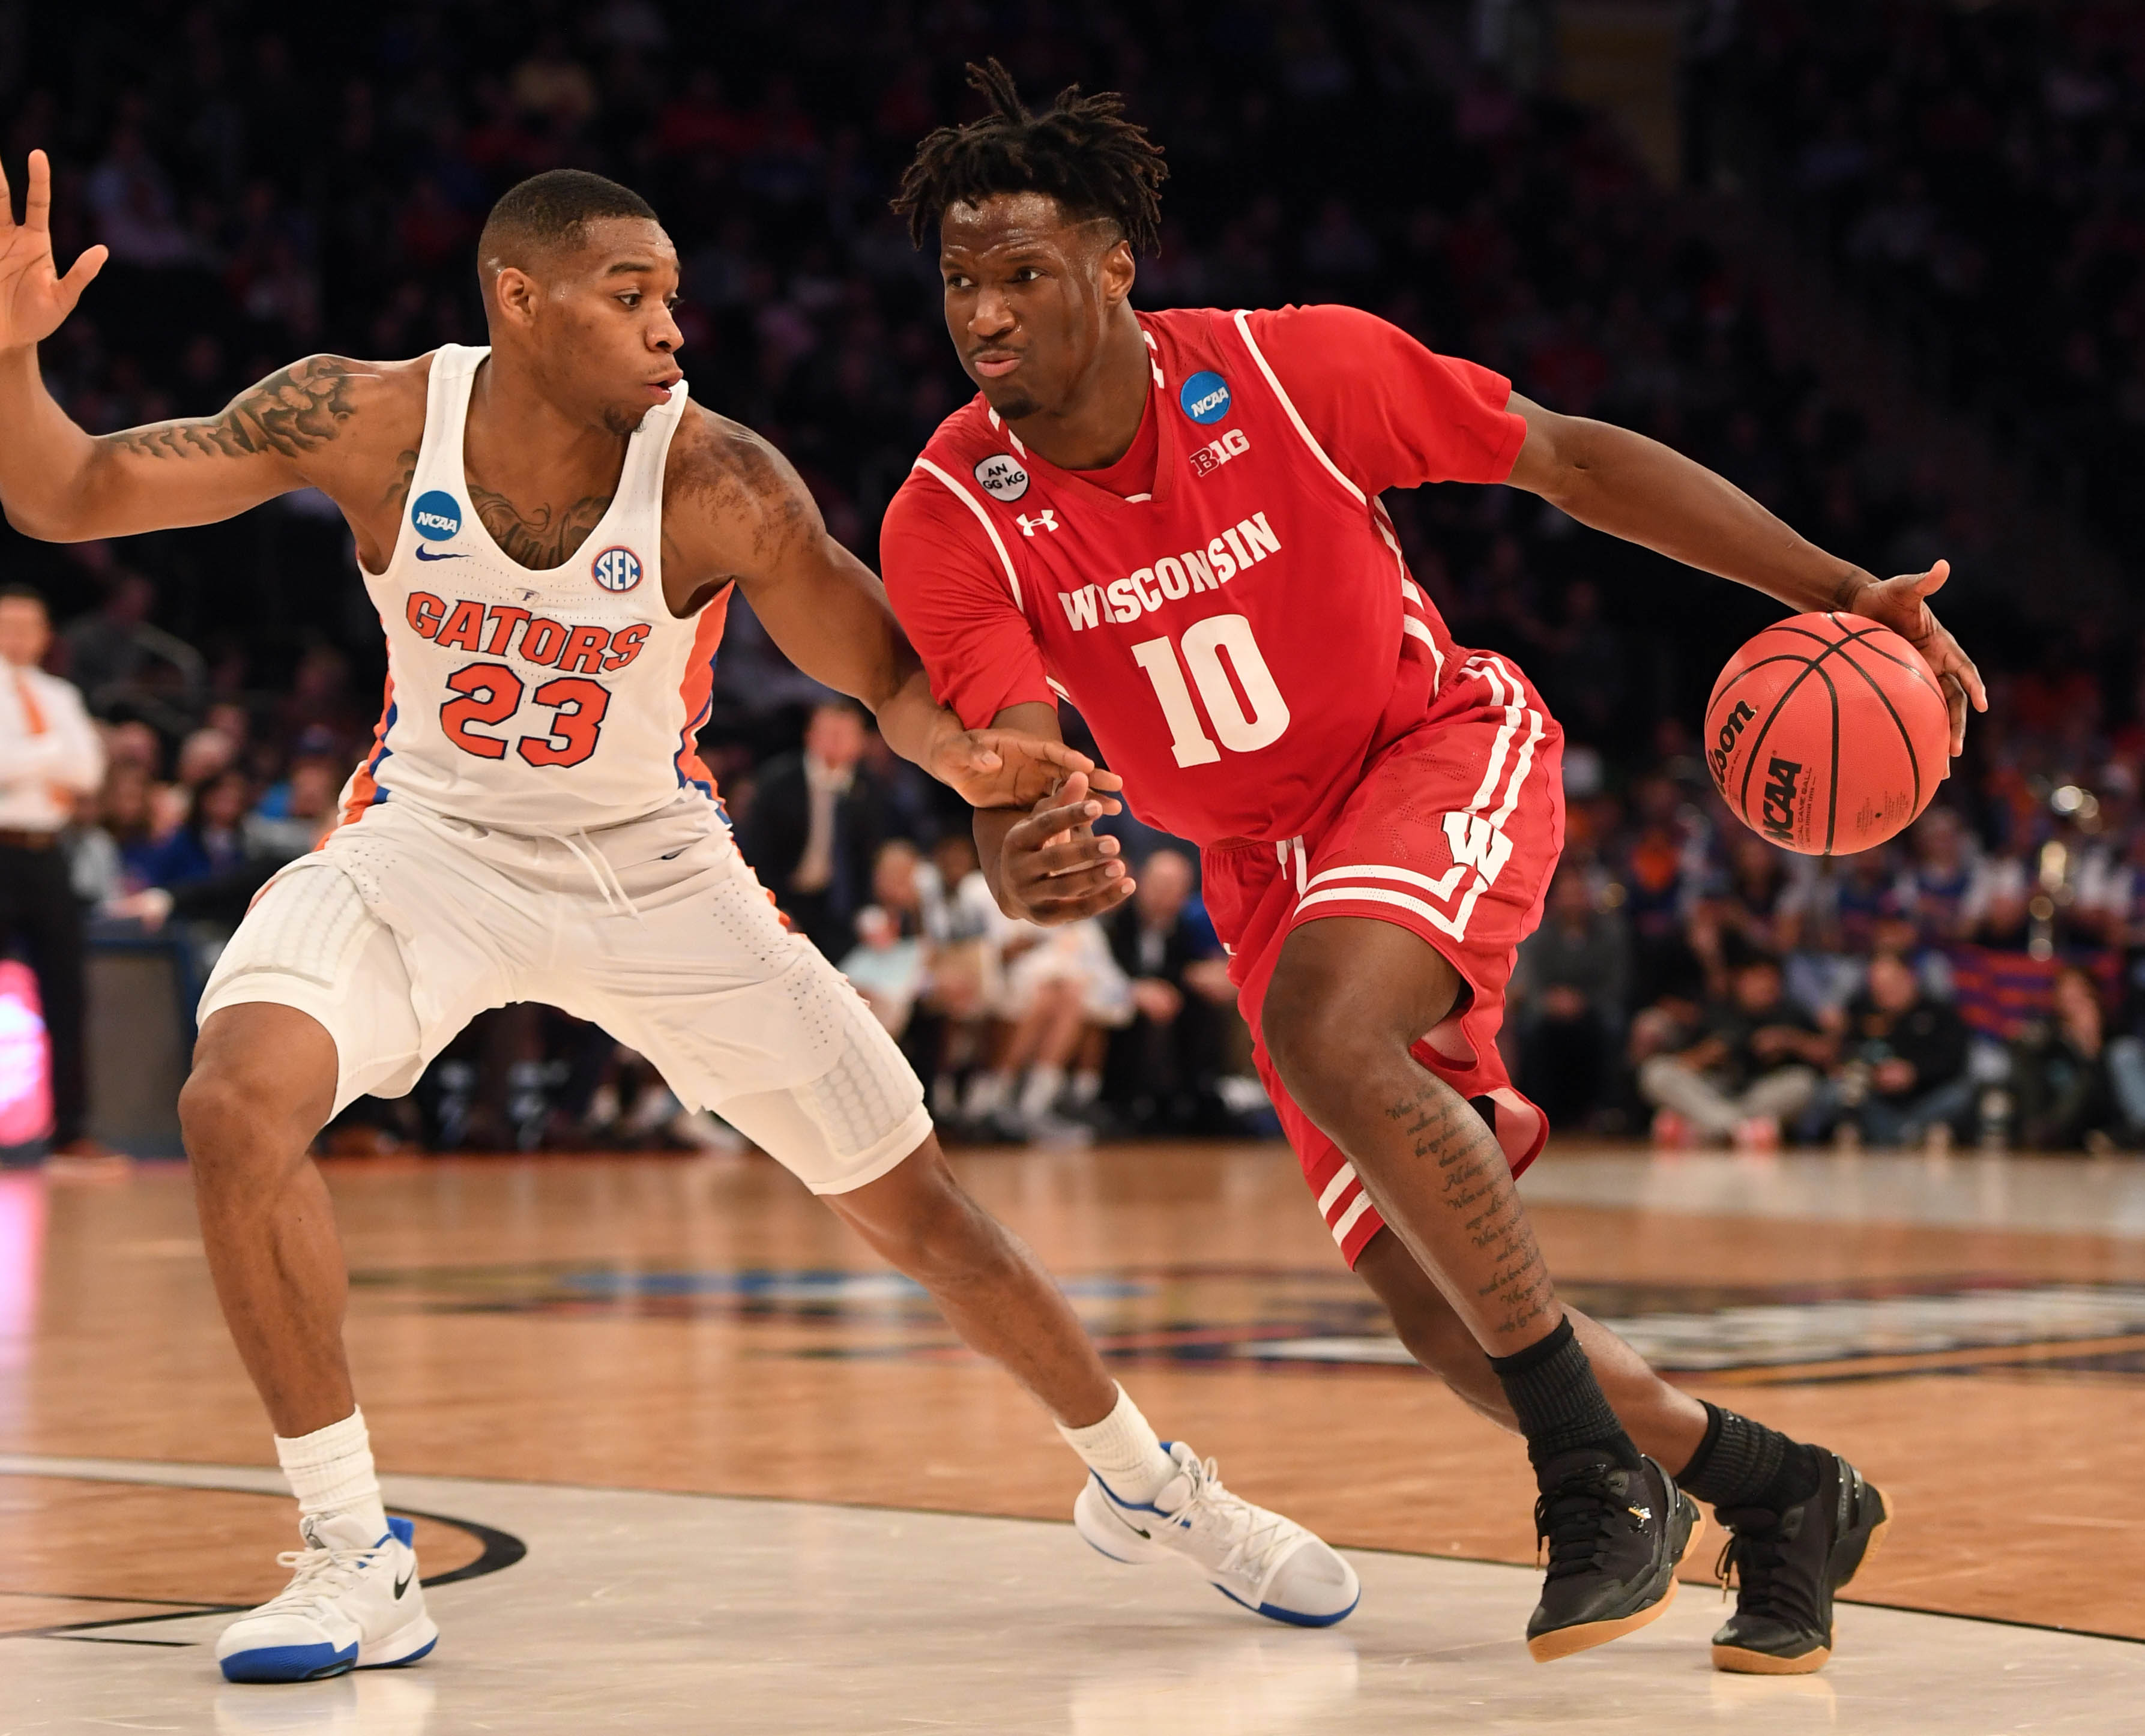 9969097-ncaa-basketball-ncaa-tournament-east-regional-wisconsin-vs-florida